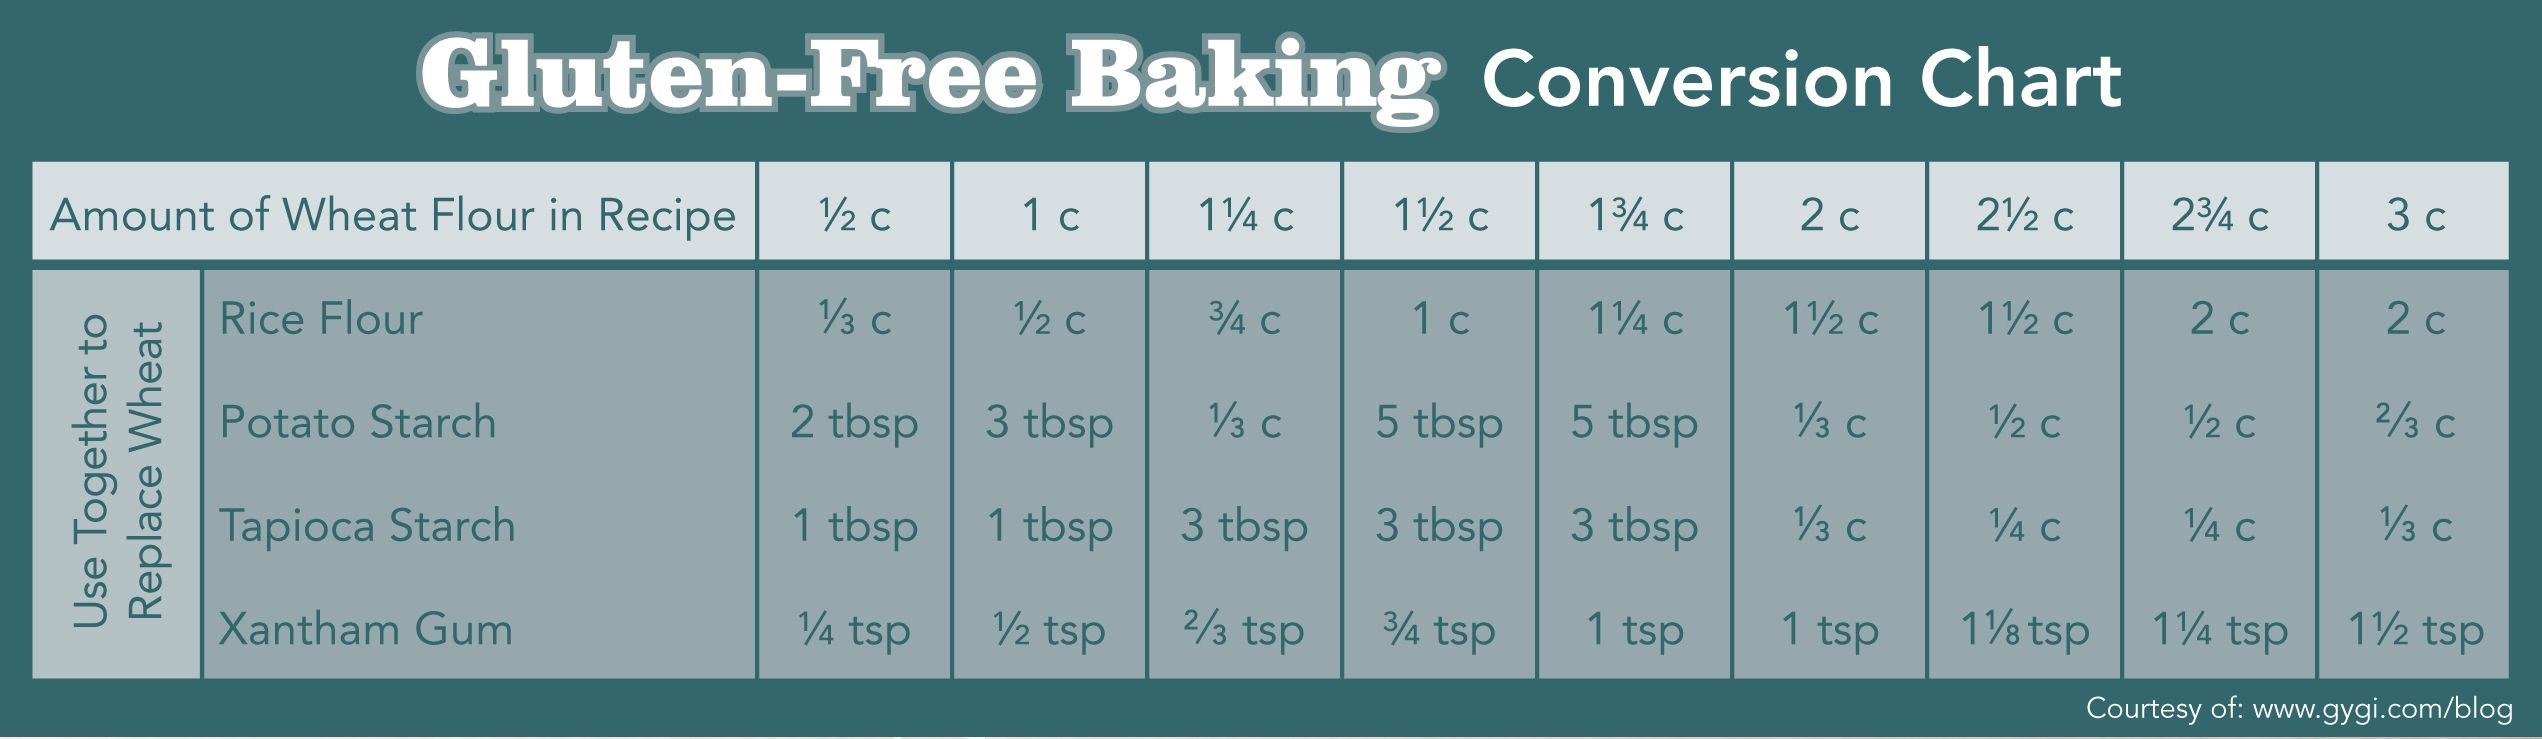 Rice flour conversion chart download the natures fare markets rice flour conversion chart download the natures fare markets gluten free shopping guide nvjuhfo Image collections